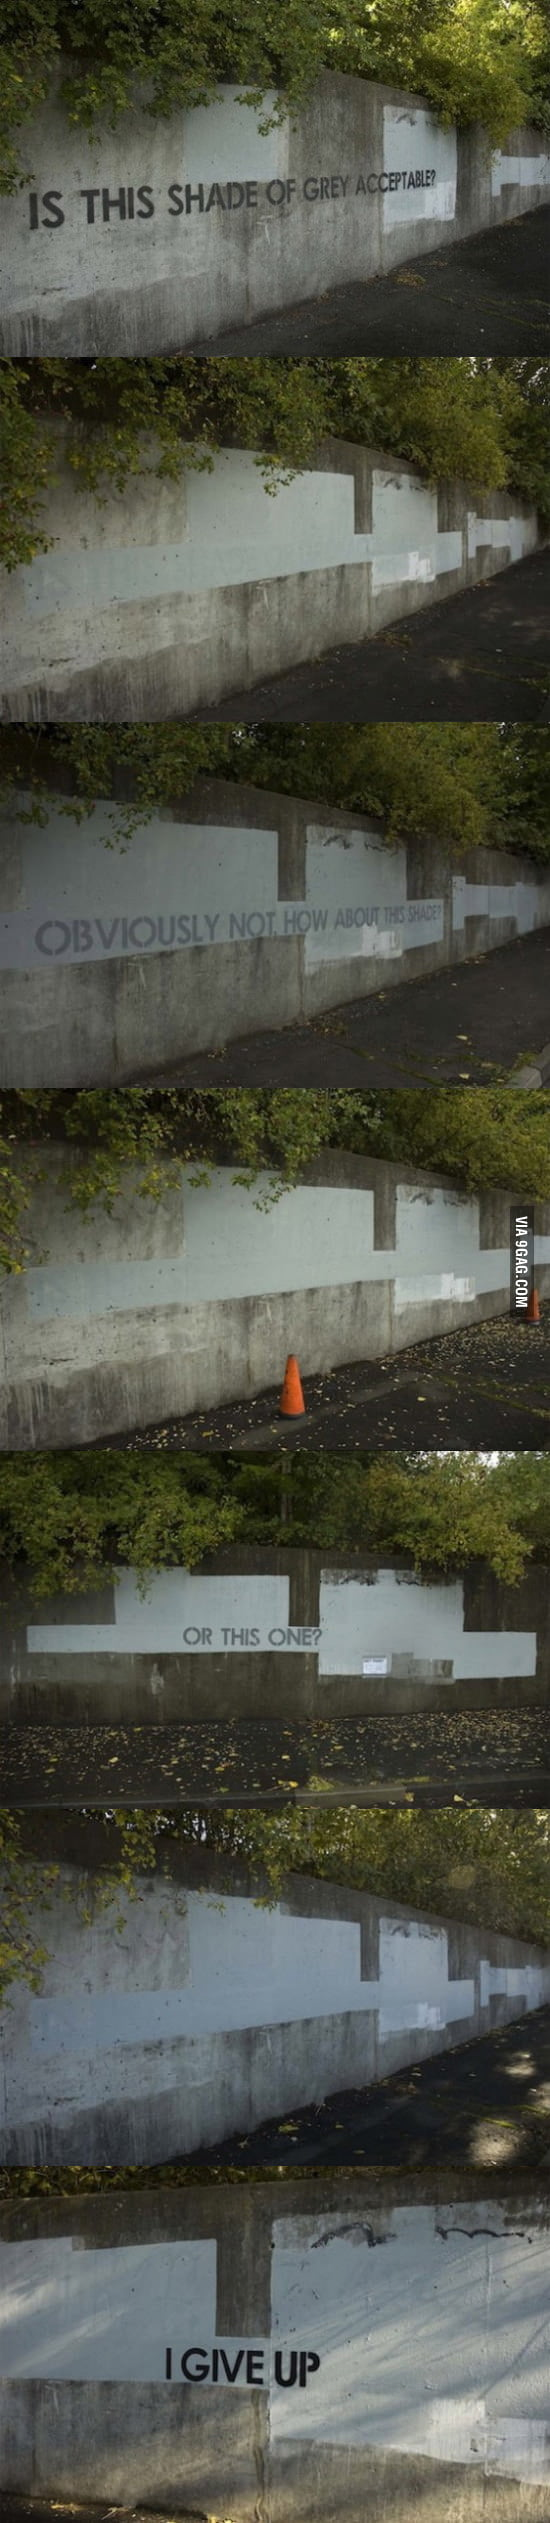 Graffiti Artist: Is this shade of grey acceptable?